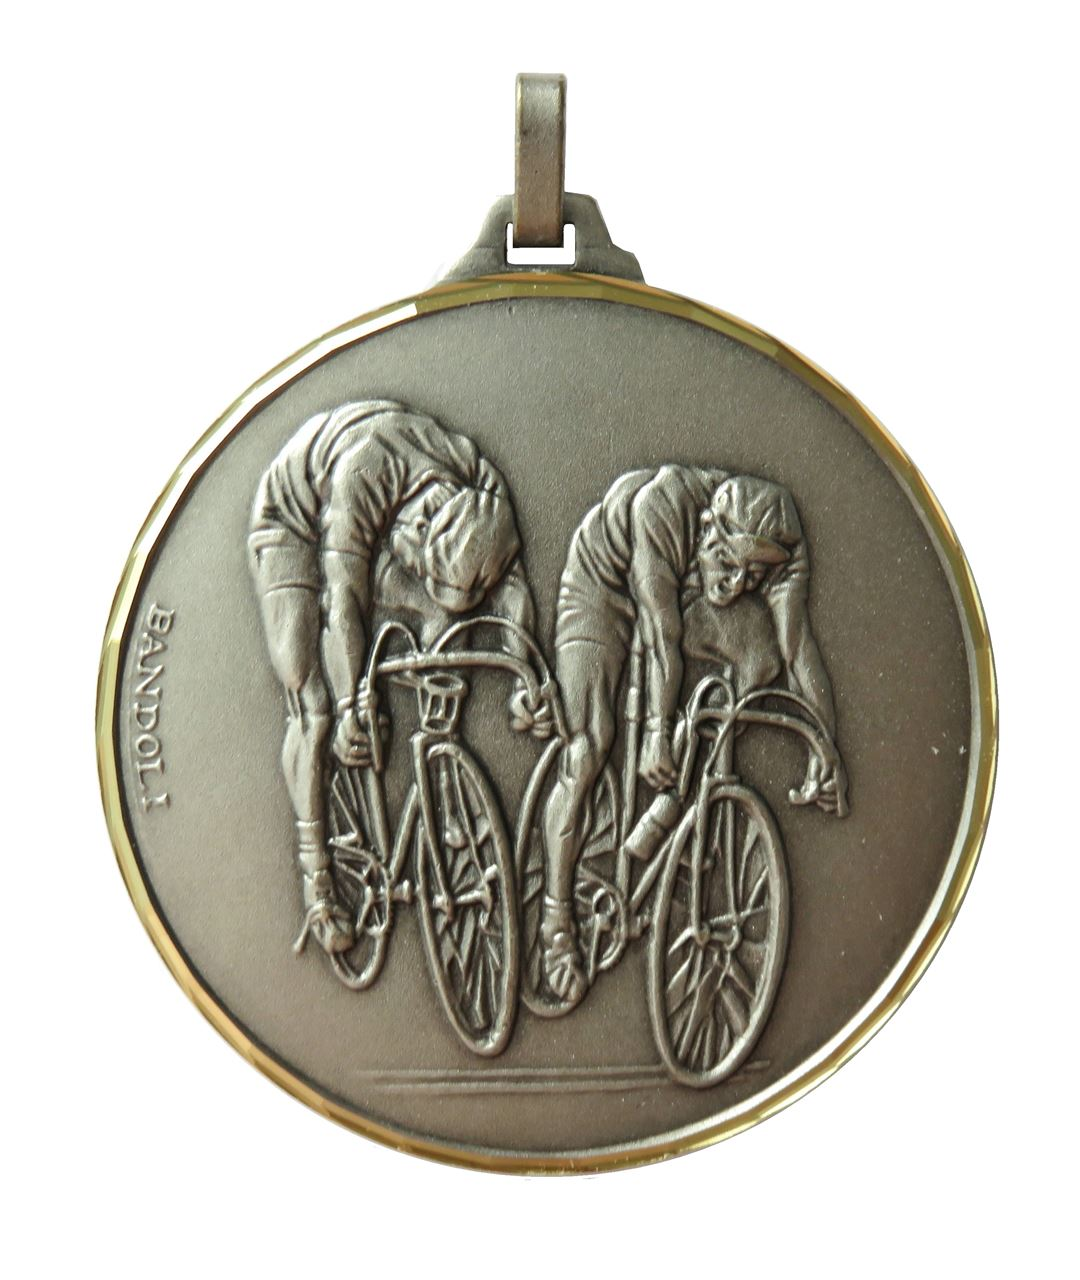 Silver Faceted Cycle Race Medal (size: 52mm) - 194F